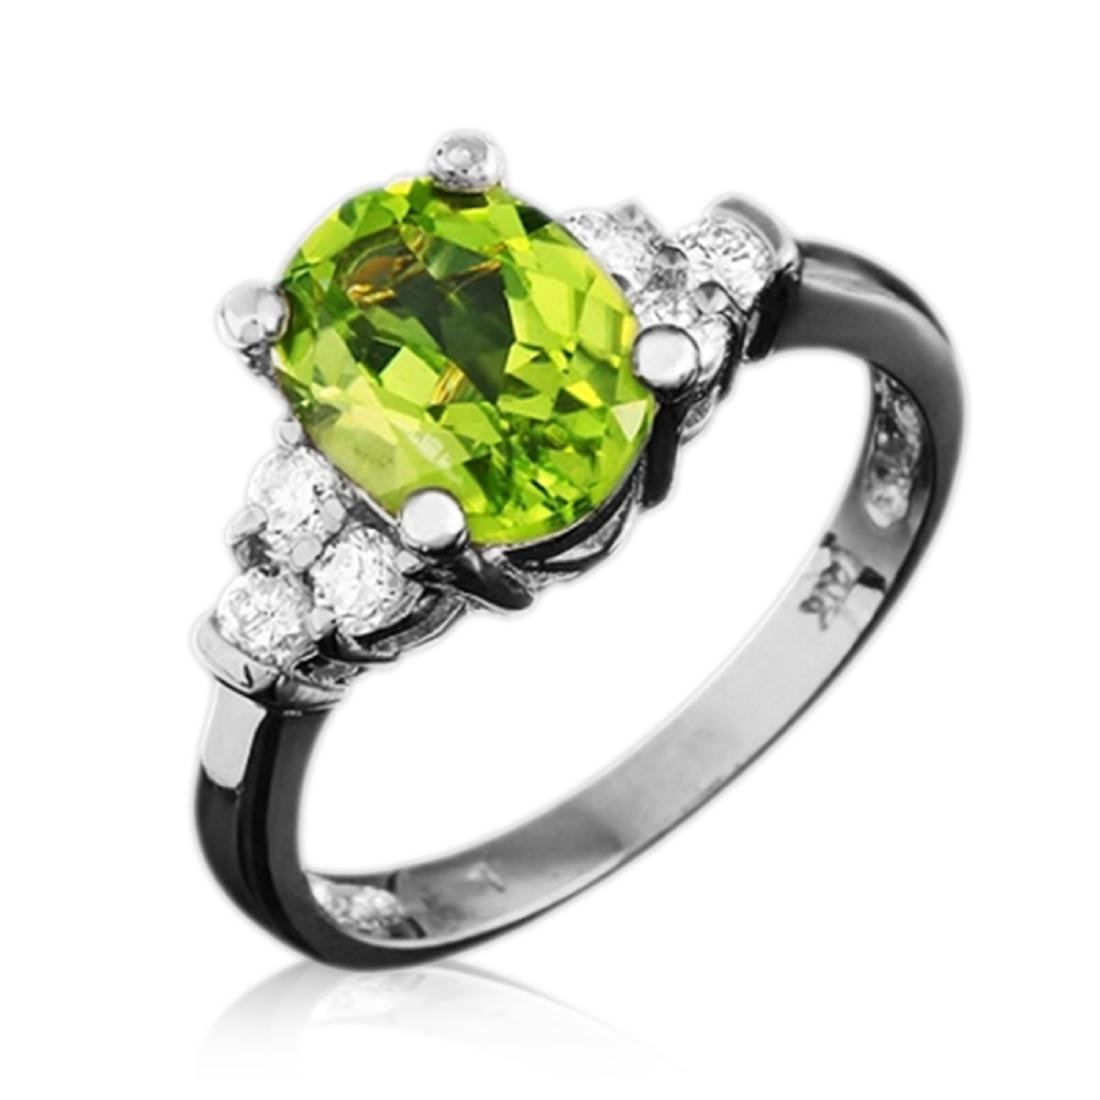 2.50 Carat Natural Peridot 18K Solid White Gold Diamond